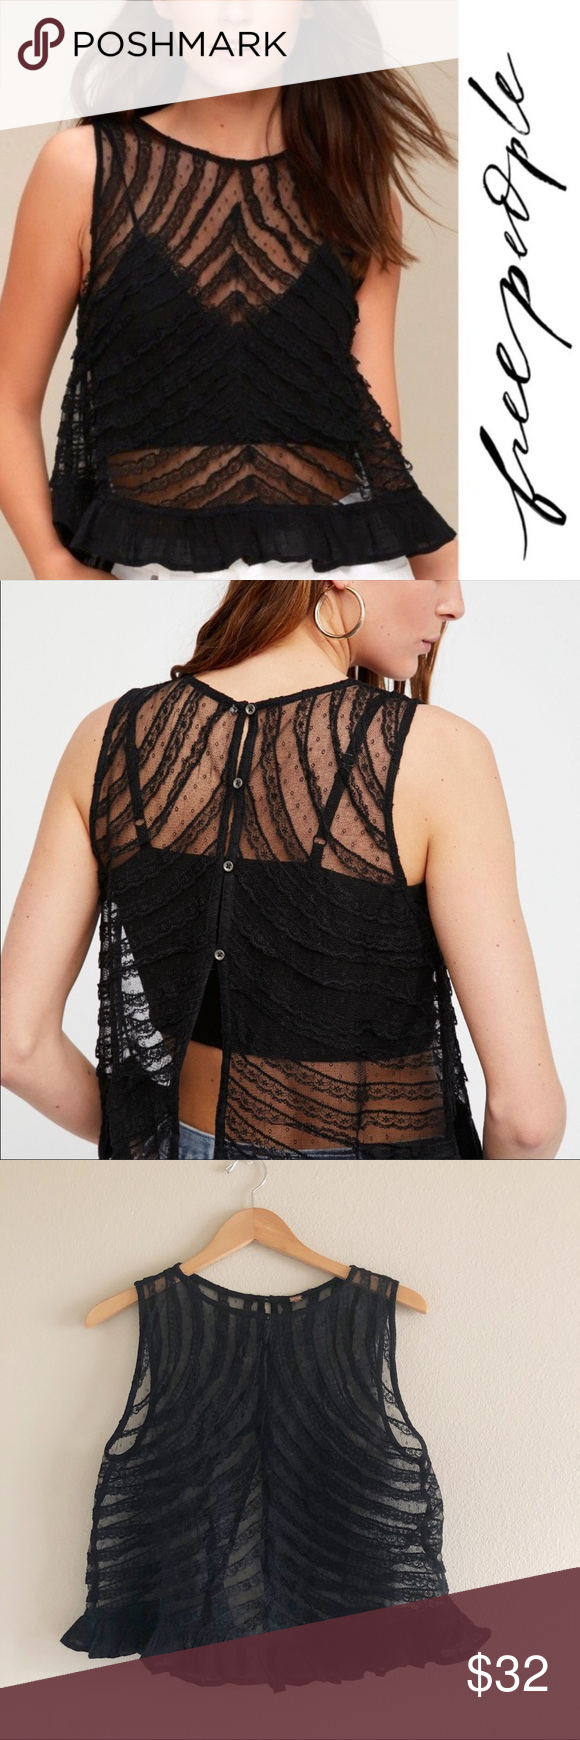 244ed3bc9a2 Free People She s A Doll Black Lace Mesh Tank Top Free People She s A Doll  Black